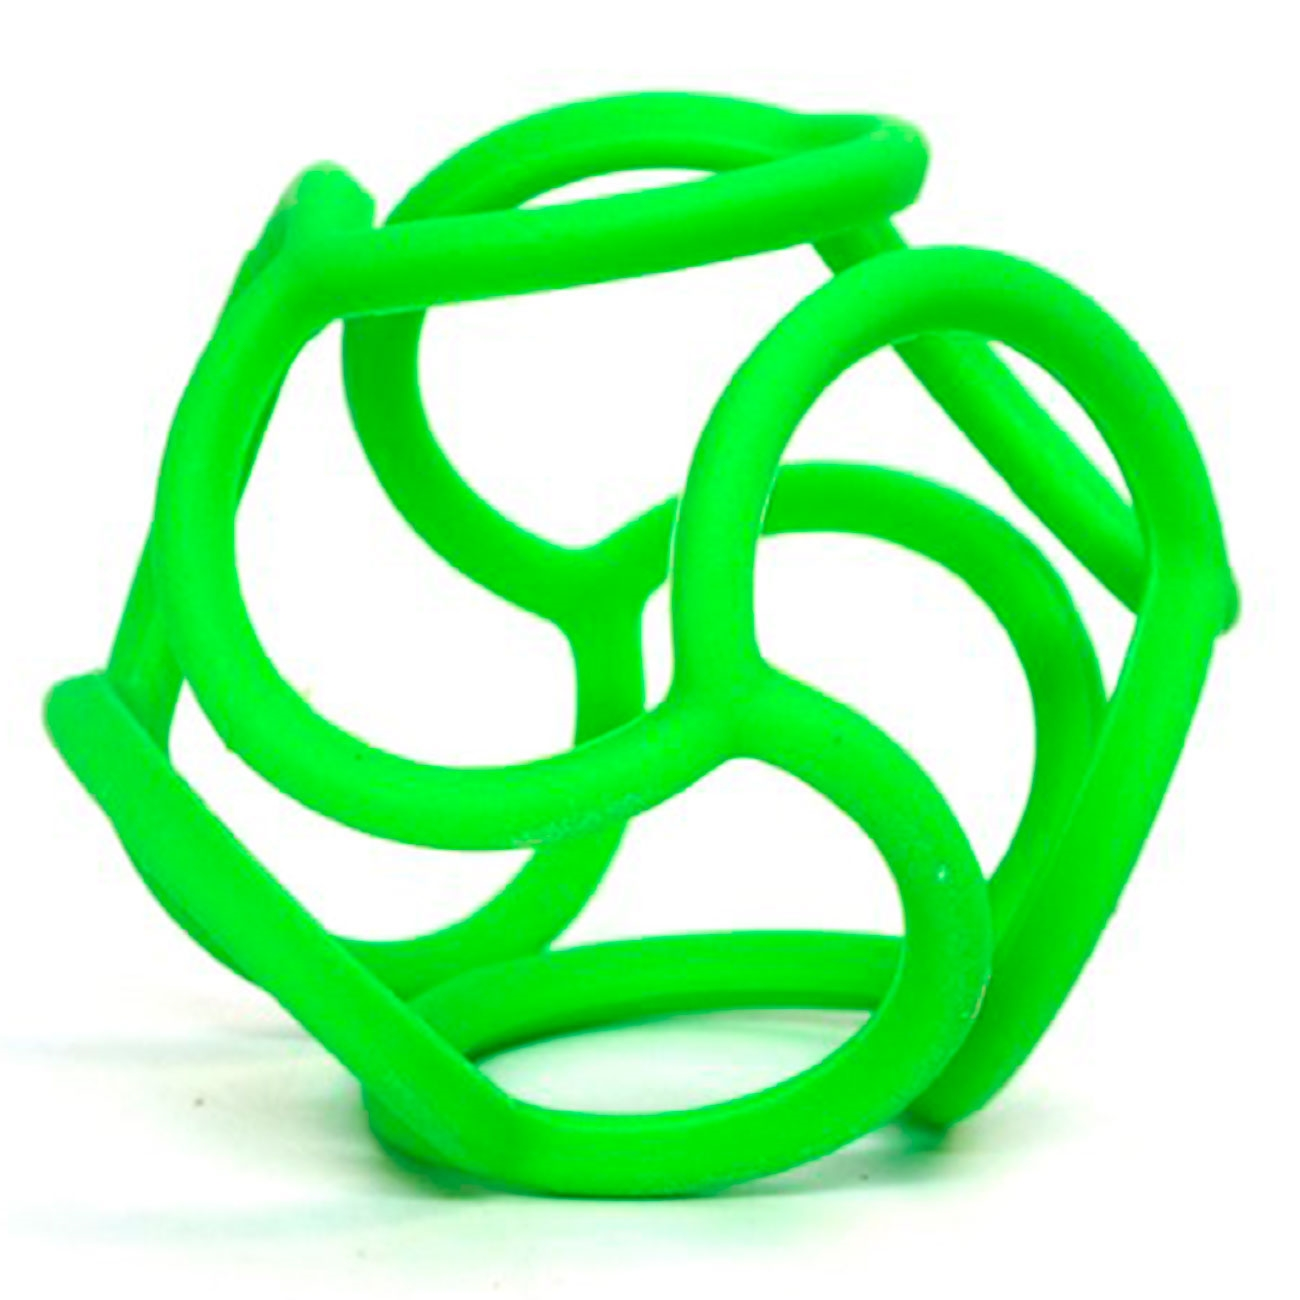 bolli-bidebold-teether-ball-green-groen-1